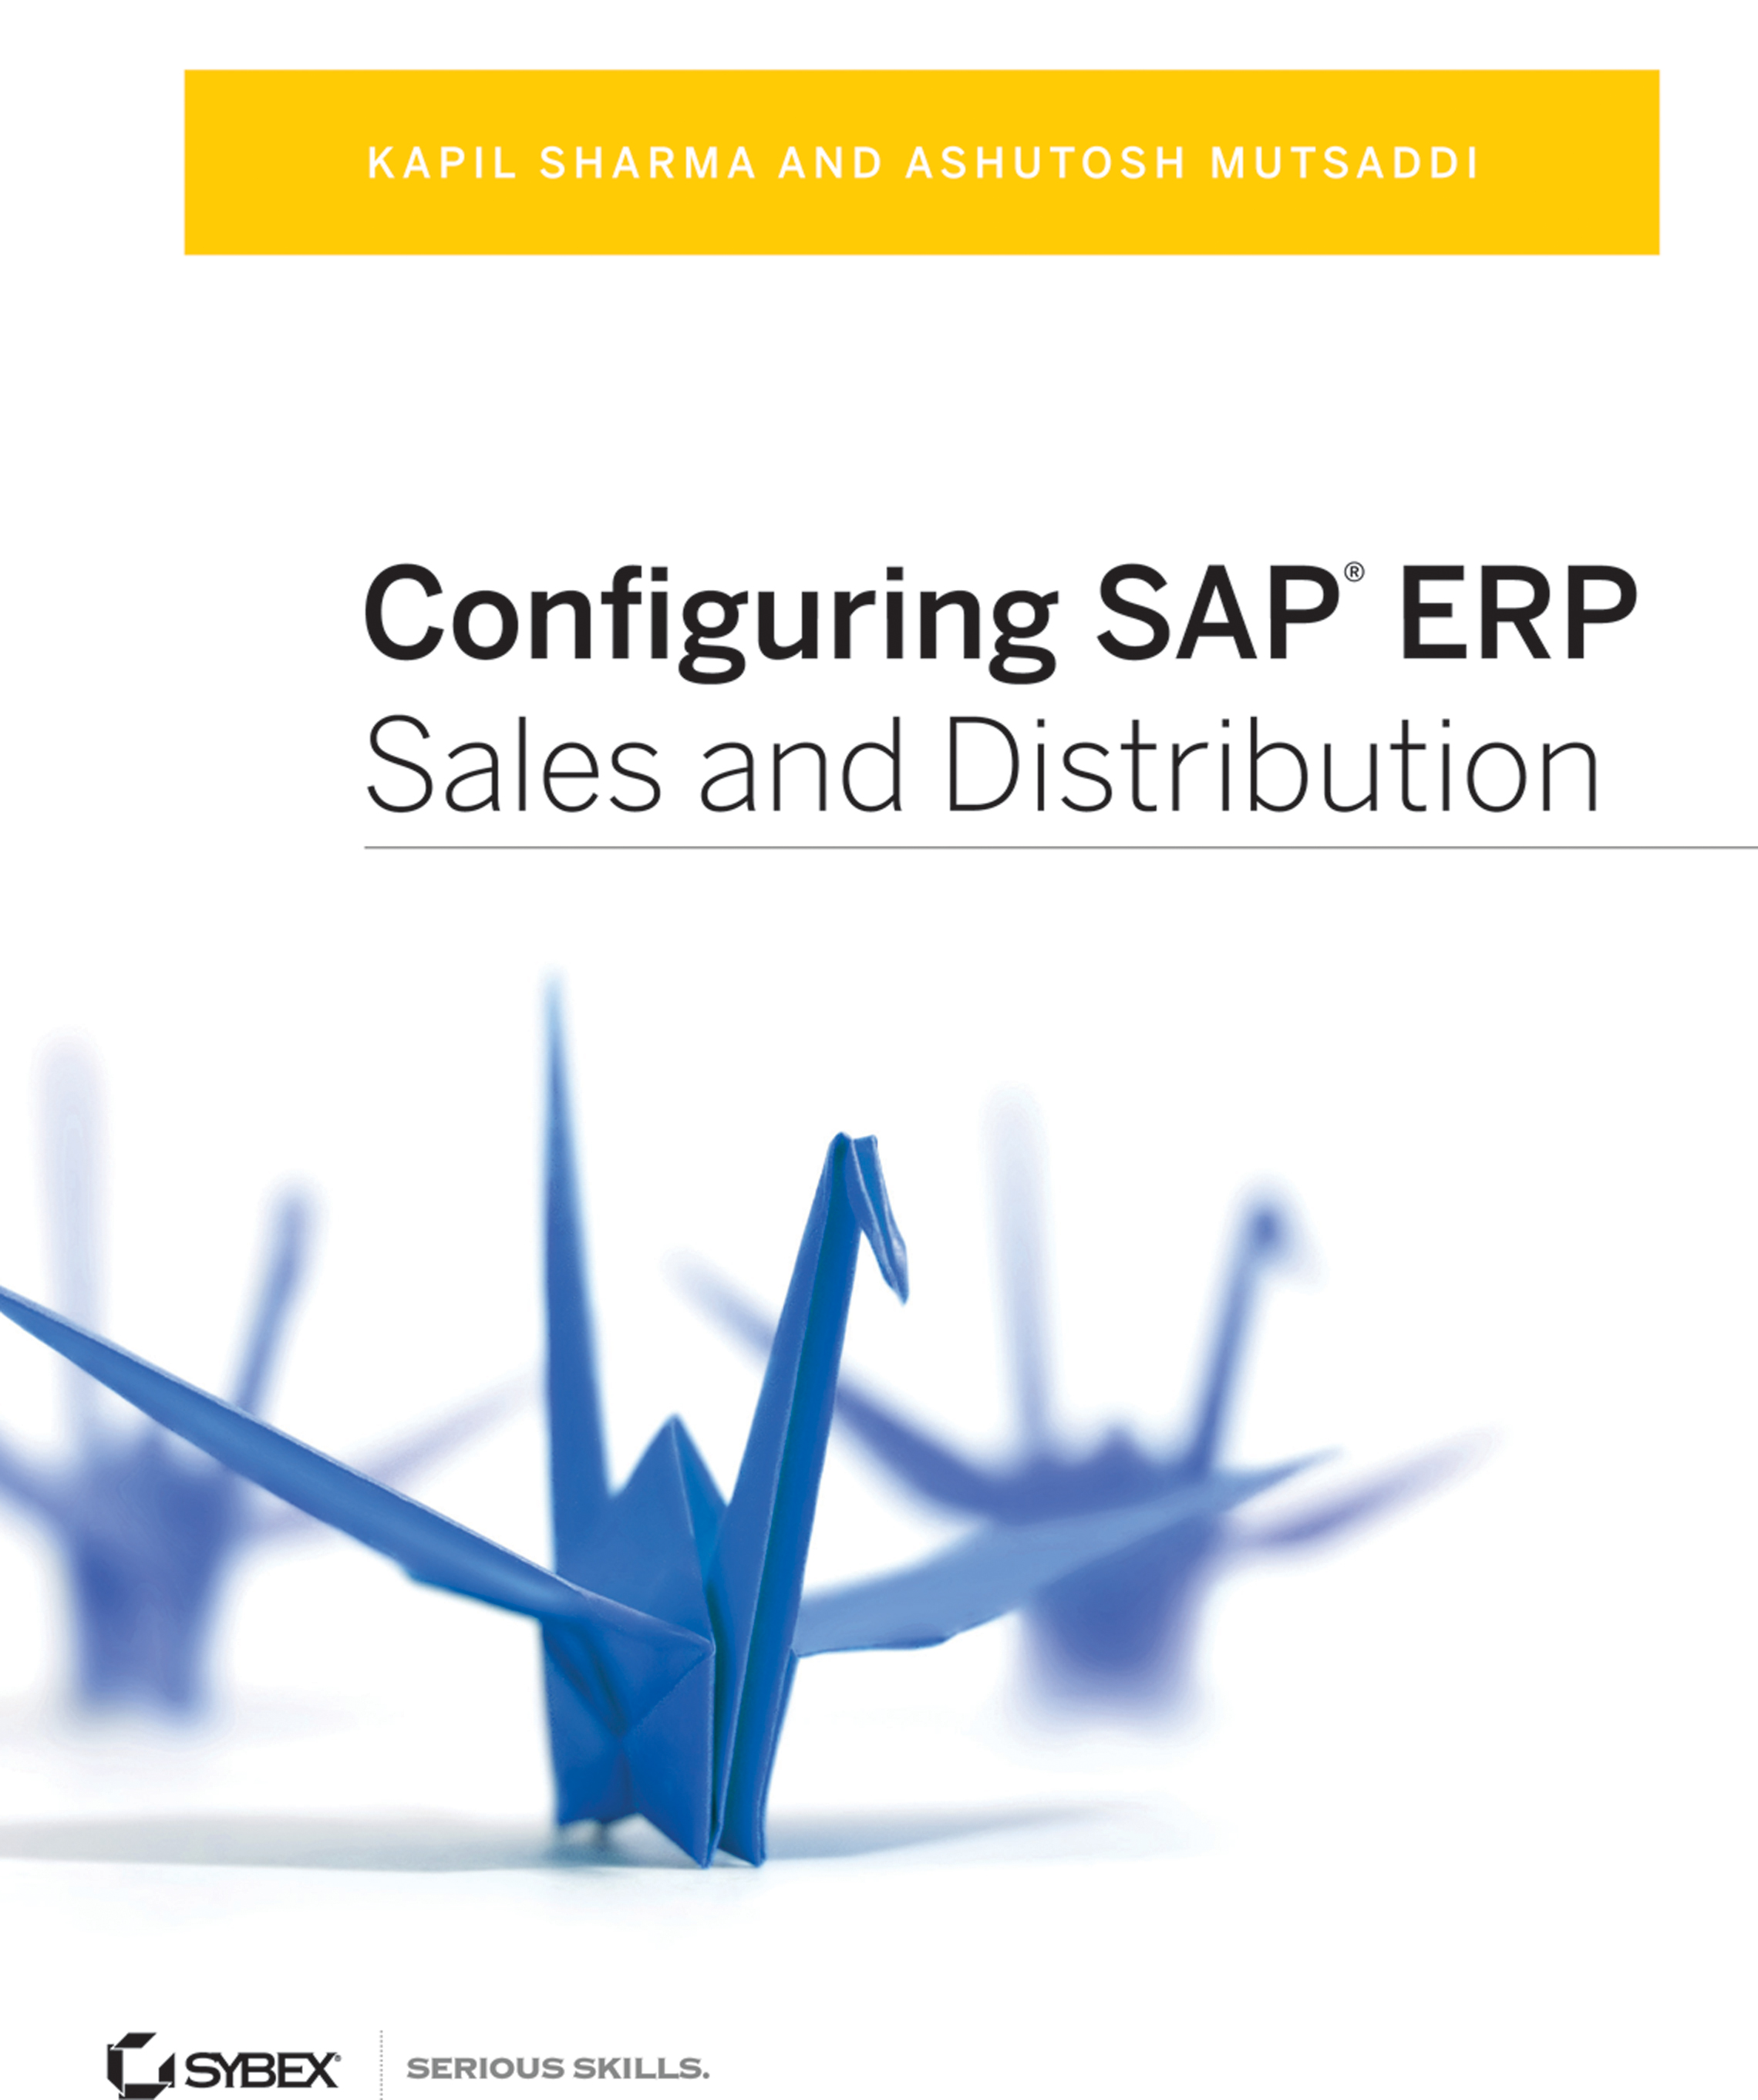 Kapil Sharma Configuring SAP ERP Sales and Distribution enterprise resource planning systems